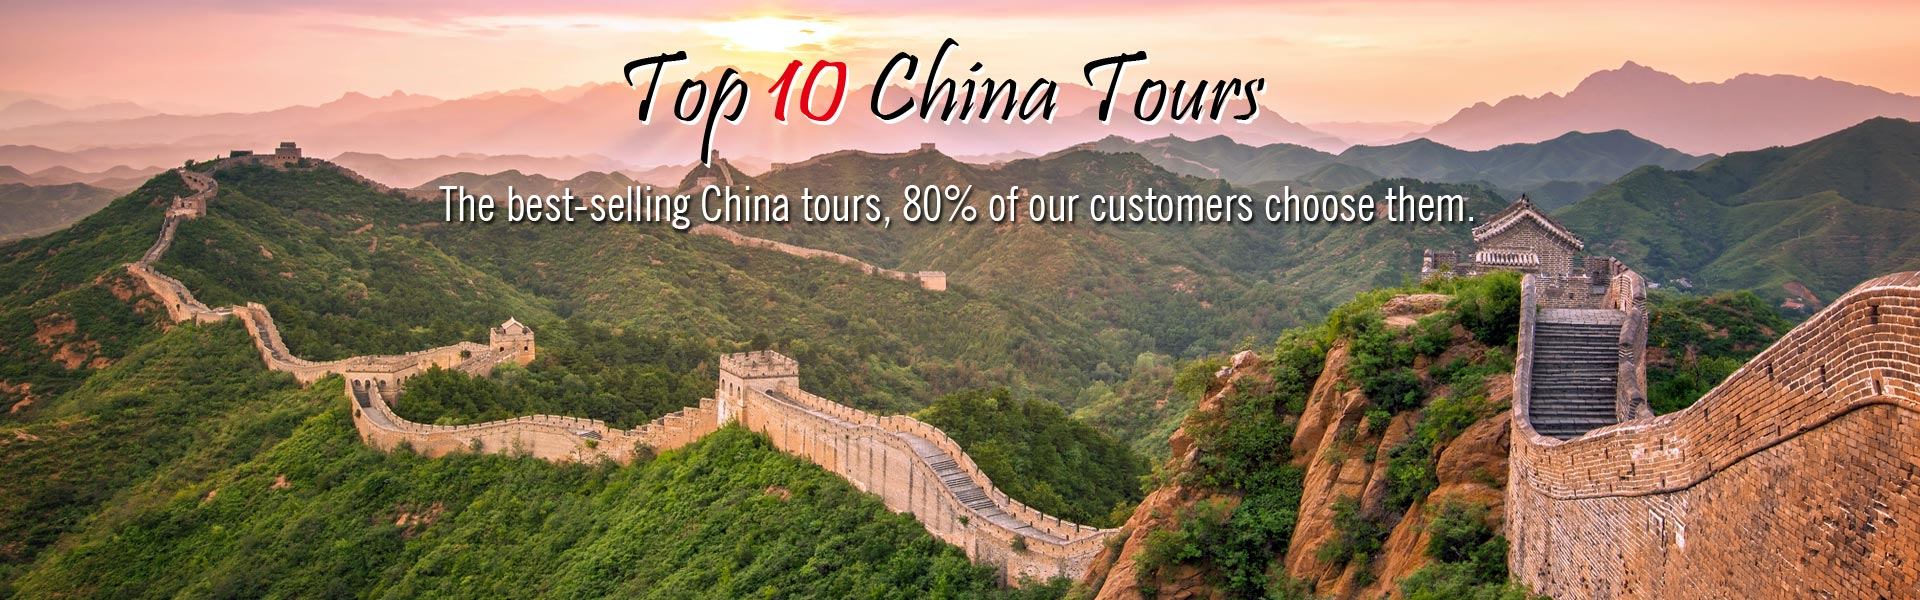 top 10 china tours